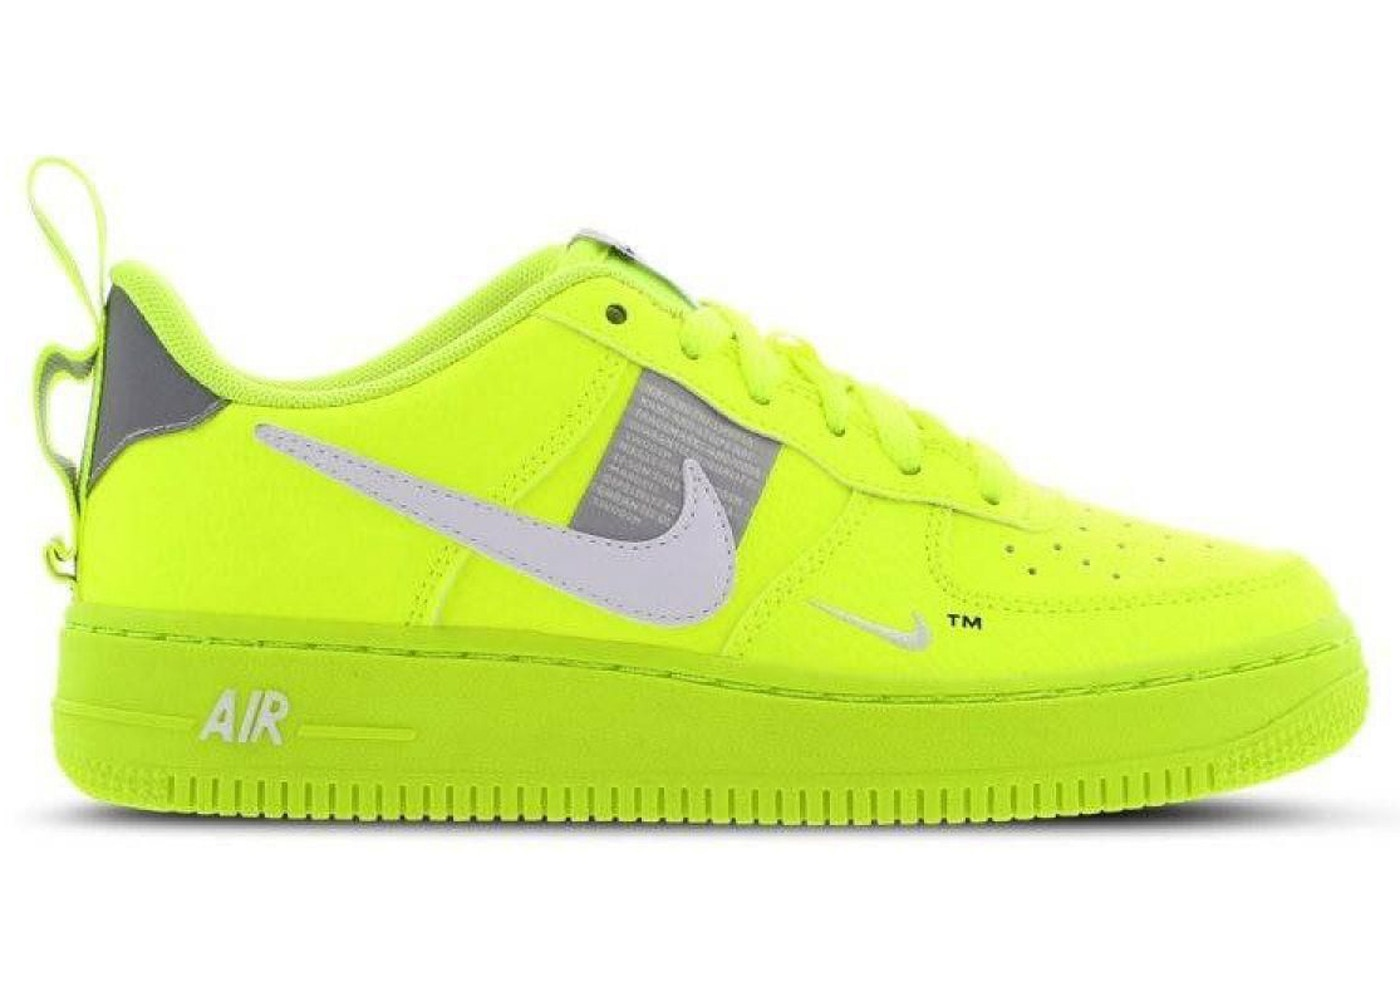 outlet store 4cfe3 3f5ab Sell. or Ask. Size  3.5Y. View All Bids. Air Force 1 LV8 Utility ...